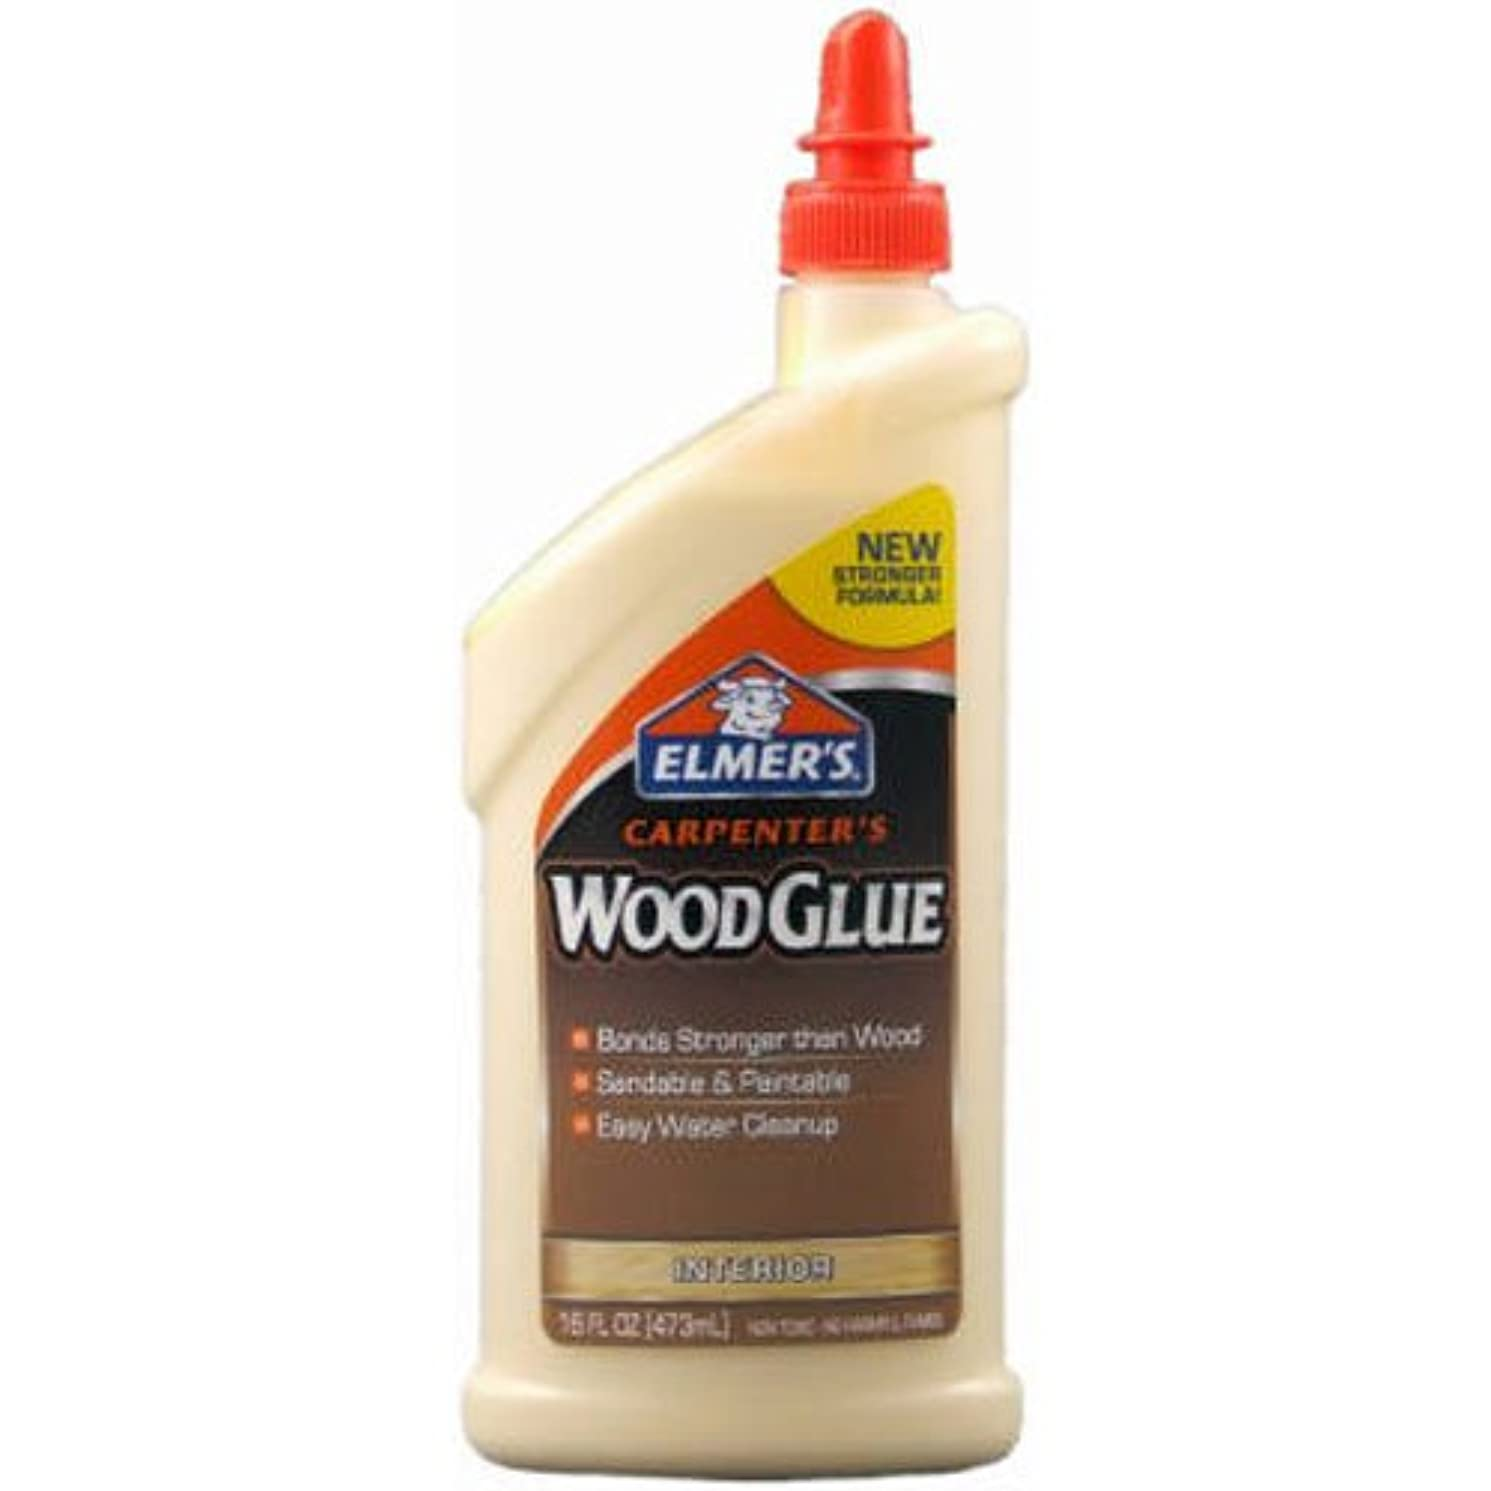 Elmer's Products, Inc E7020 Wood Glue, 16 oz, Tan xo617463802030